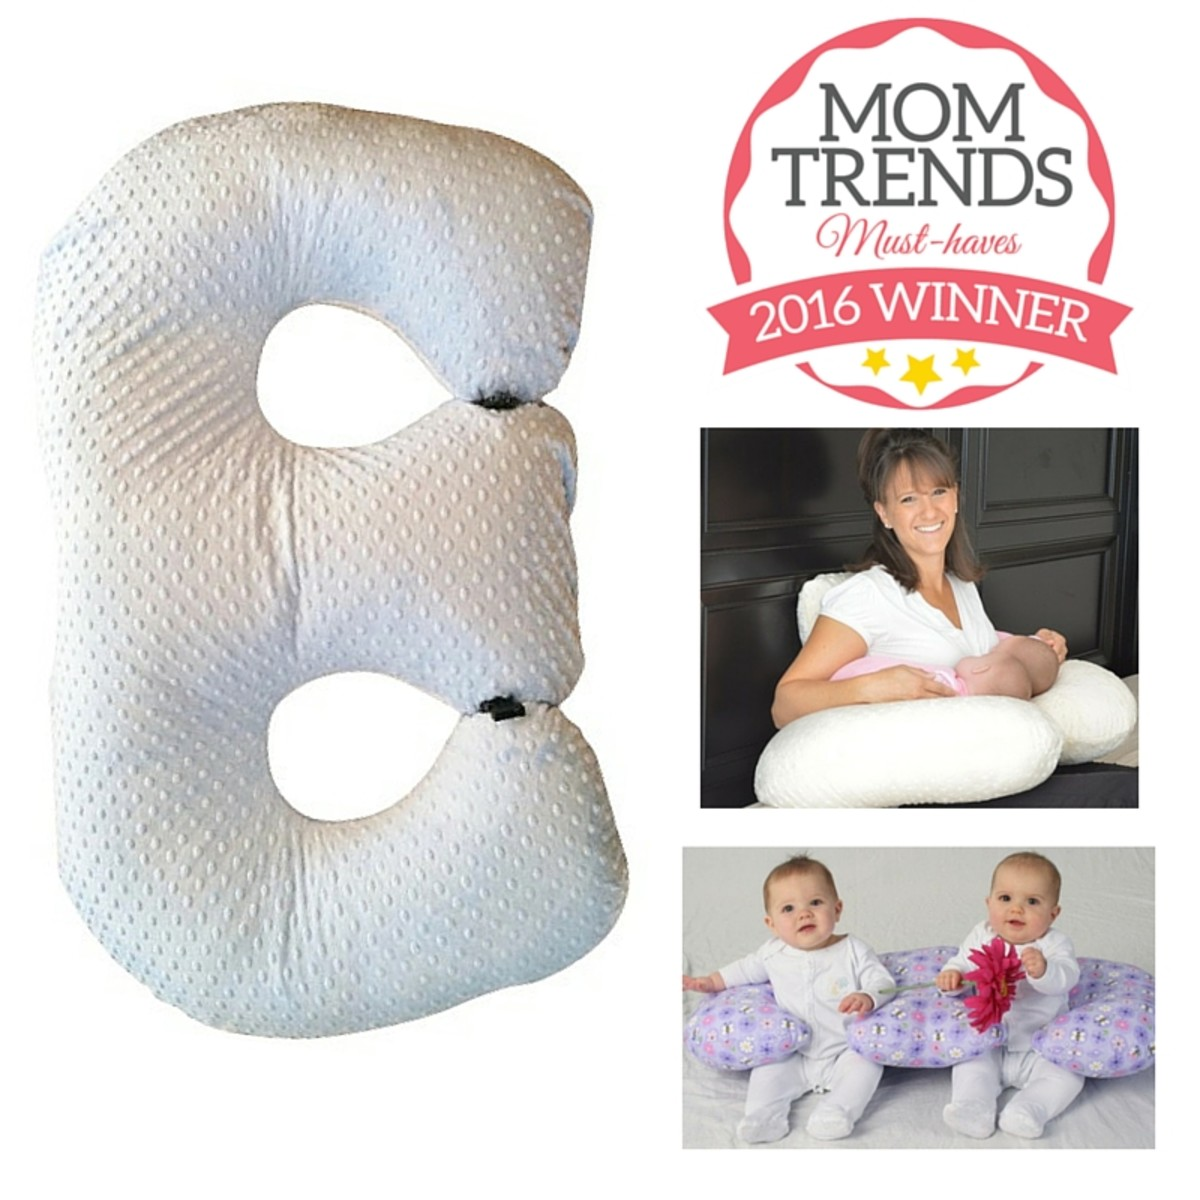 Twin Z Breastfeeding pillow